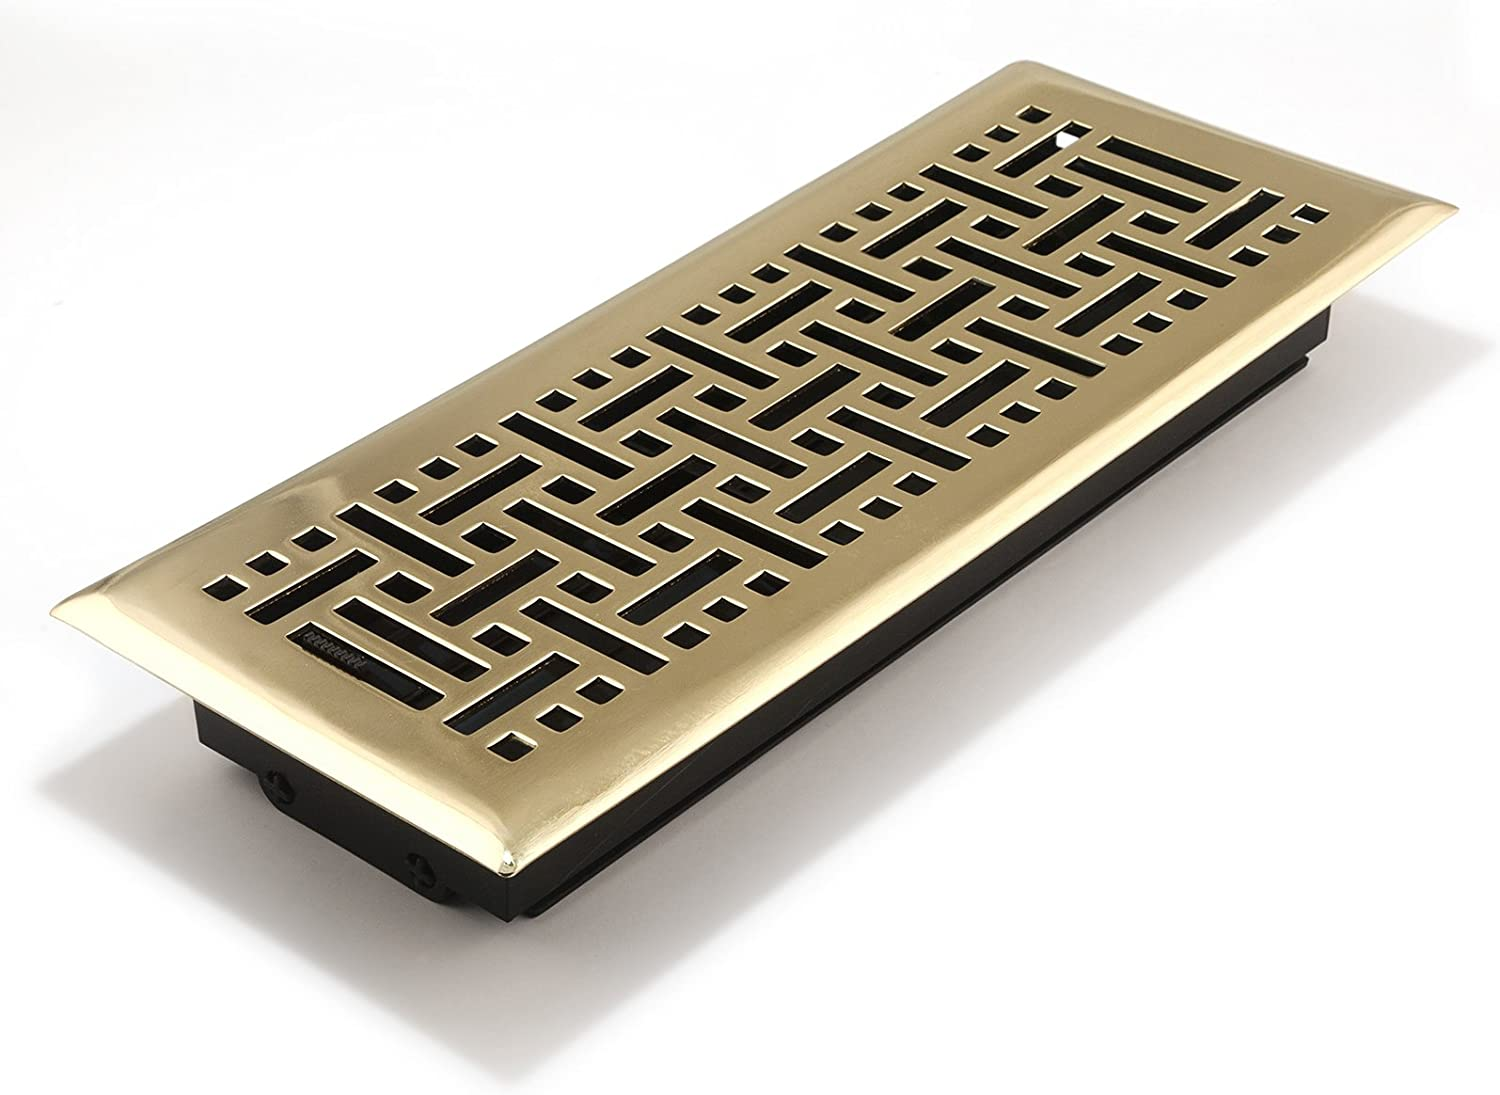 Accord Ventilation AMFRPBB412 Floor Register with Wicker Design, 4-Inch x 12-Inch(Duct Opening Measurements), Polished Brass